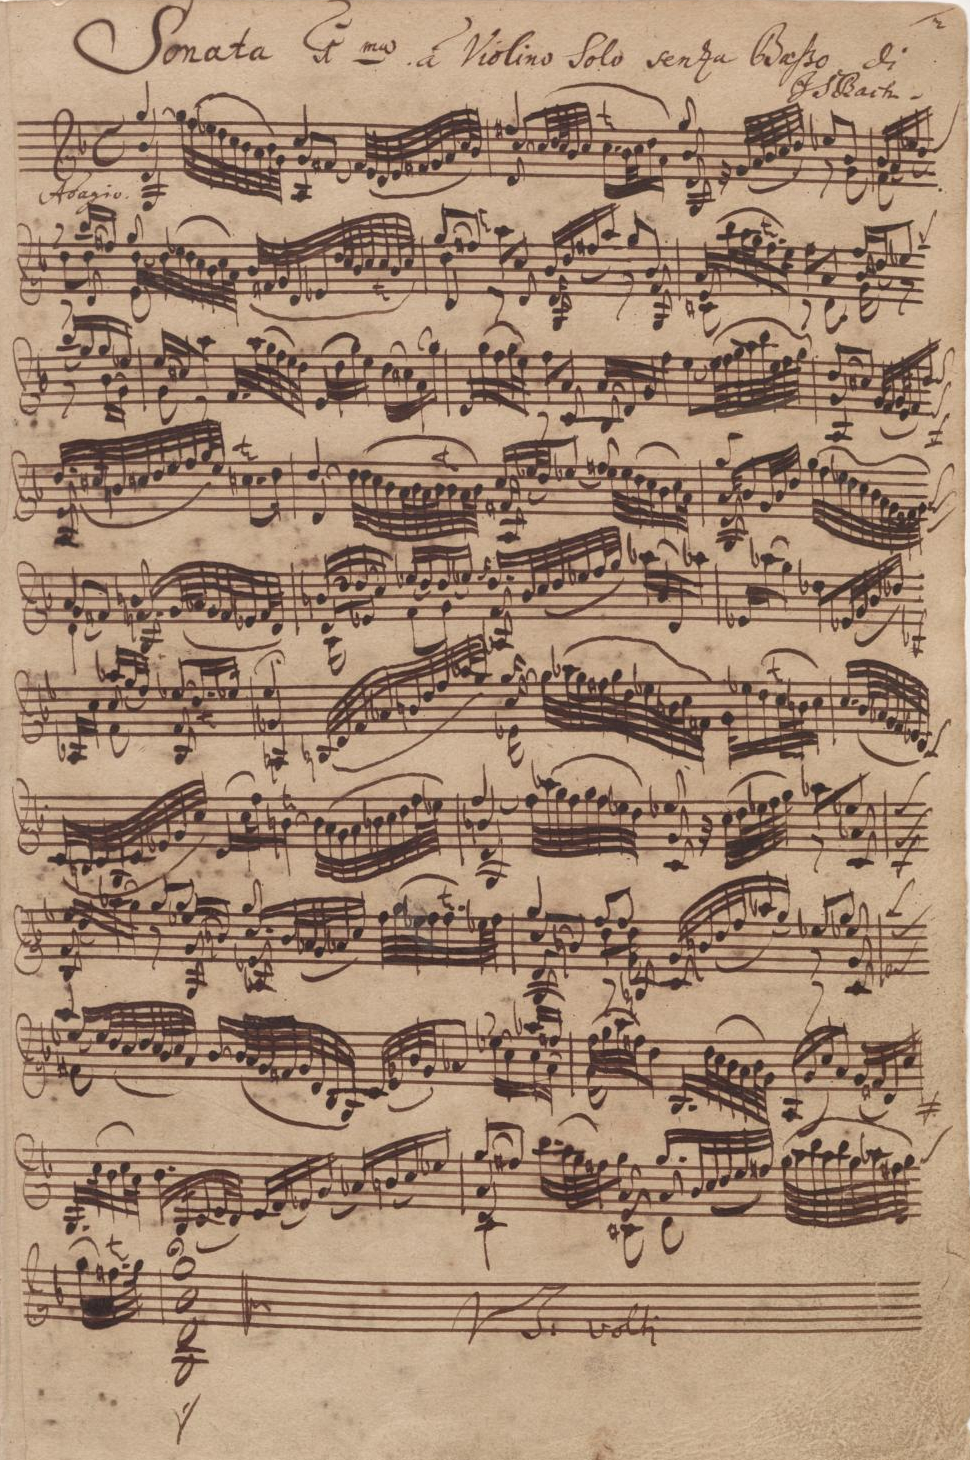 Sonata for single violin #1 in E minor BWV 1001, Johann Sebastian Bach